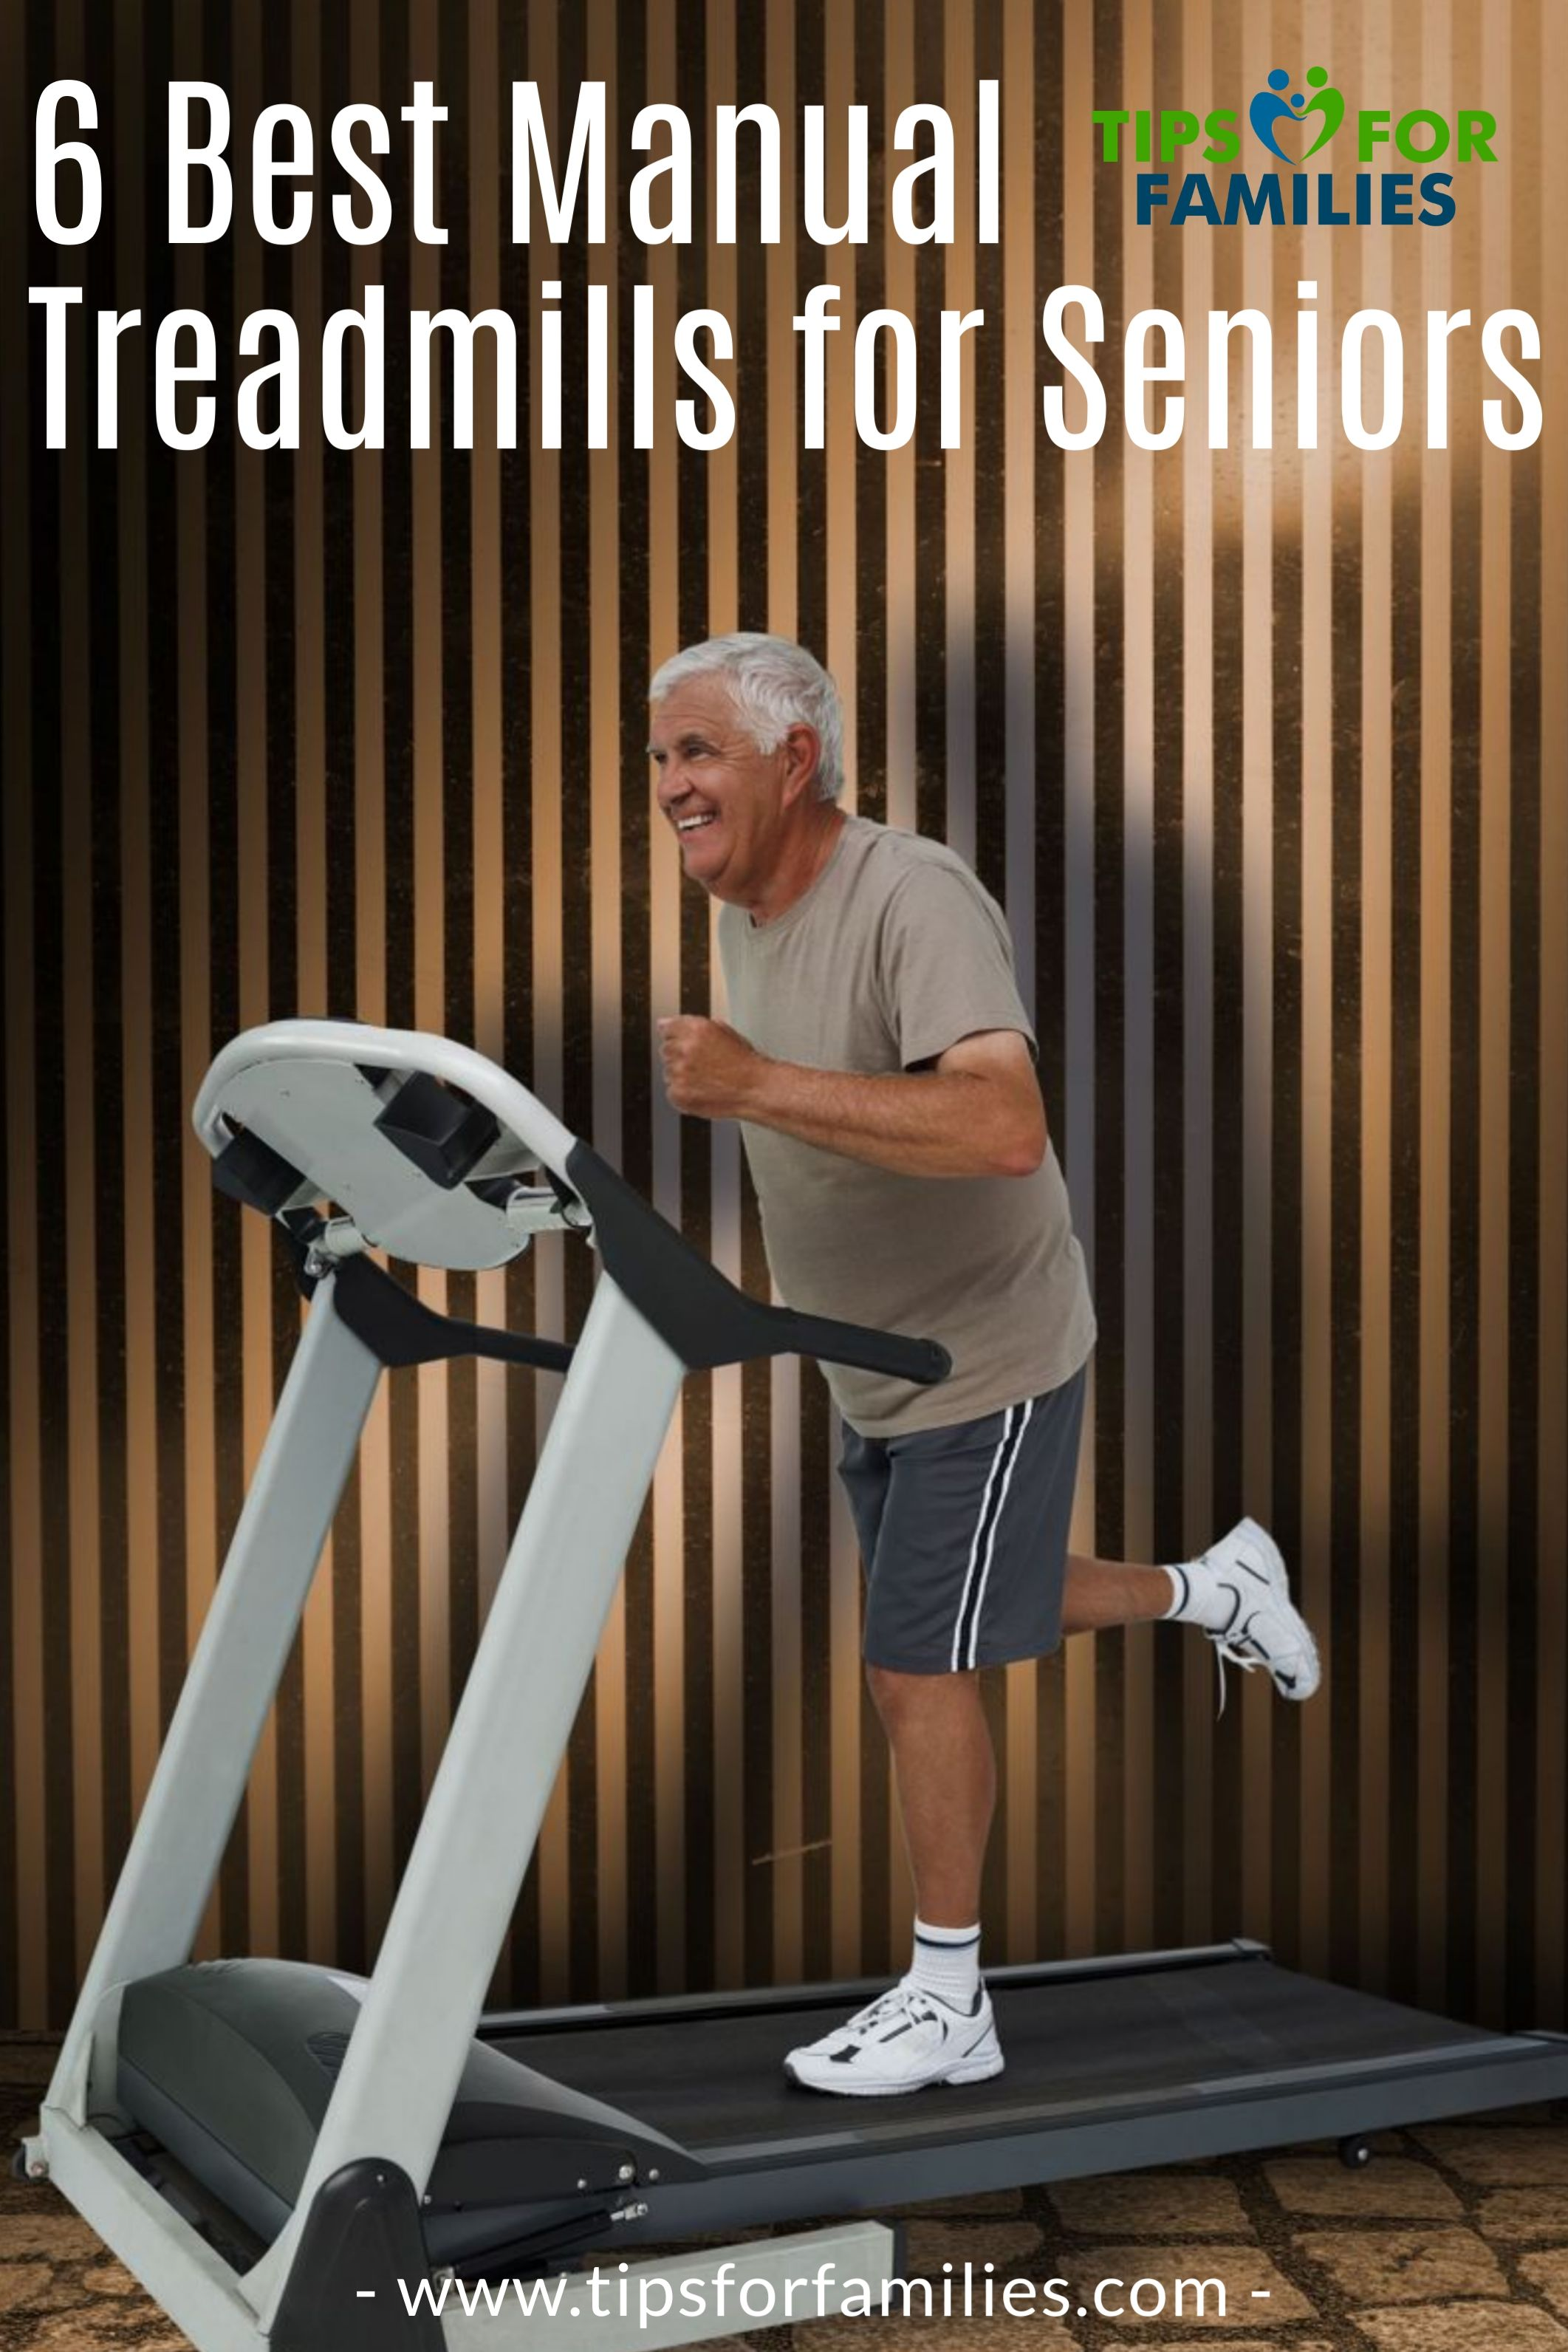 The 6 Best Manual Treadmills For Seniors Reviewed Buying Guide Treadmill Stay In Shape Elderly Activities